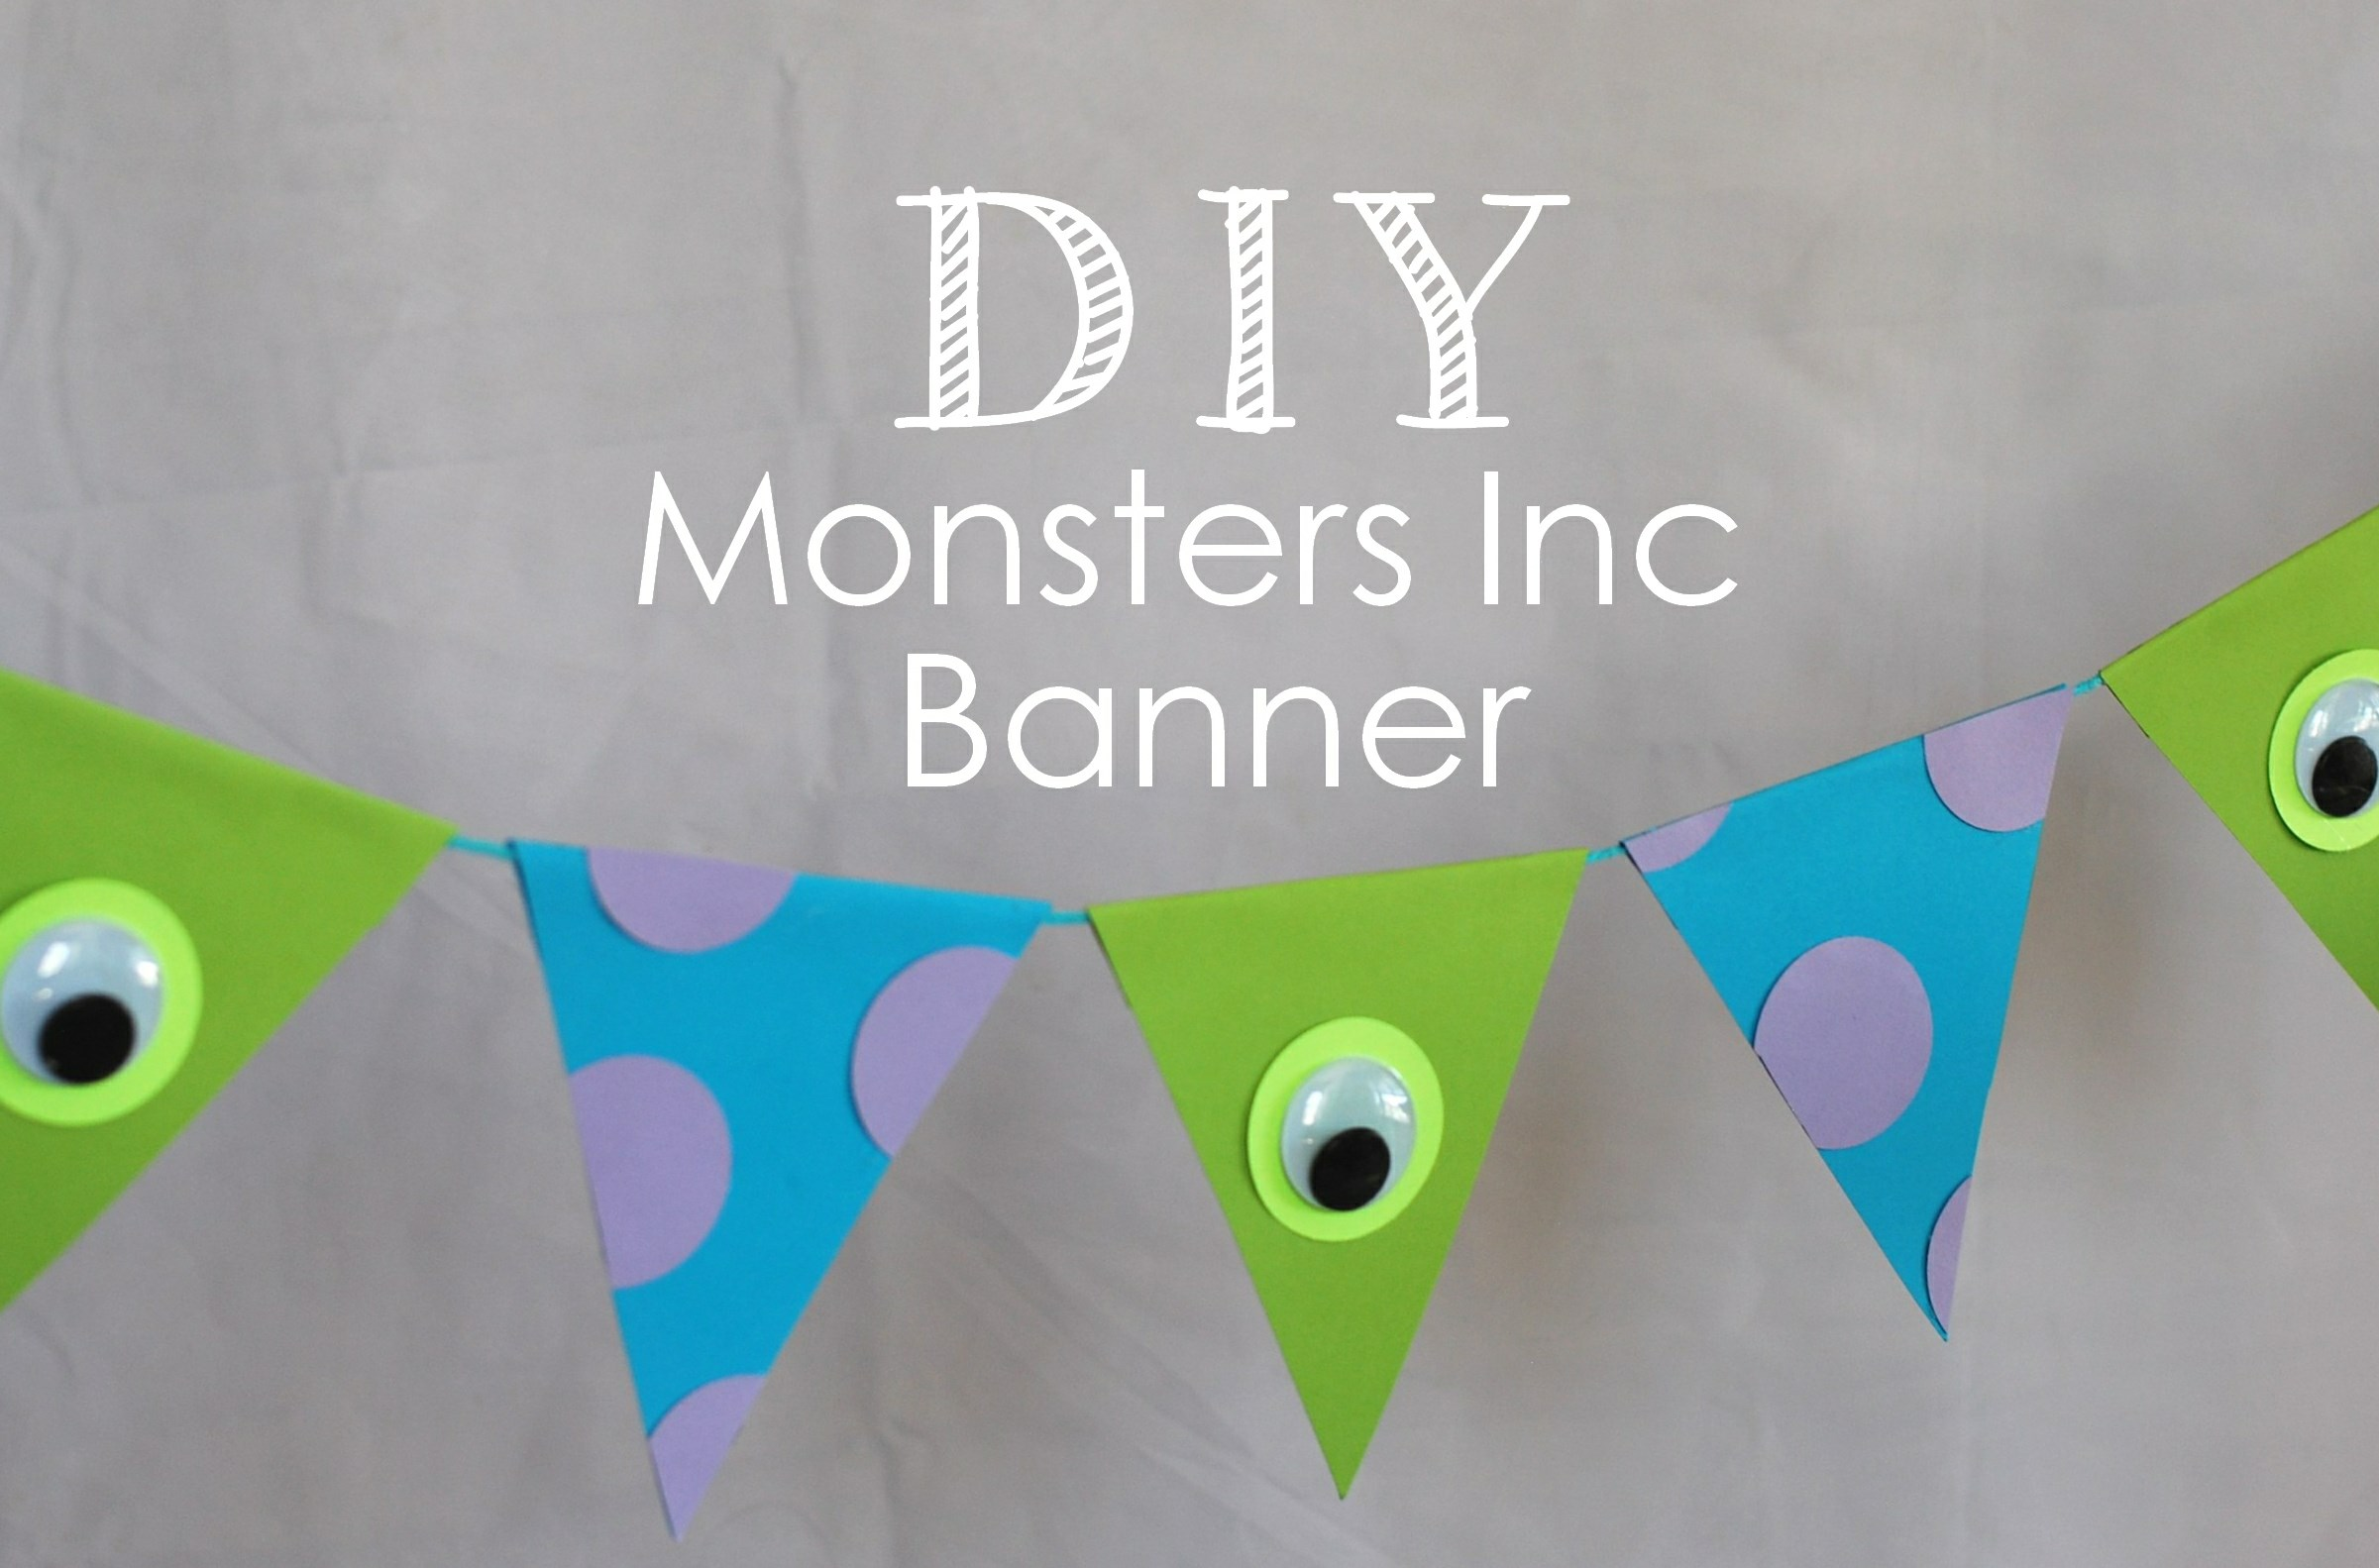 Monster Inc Baby Shower Decorations An Adorable Diy Monster Inc Banner Posh Tart